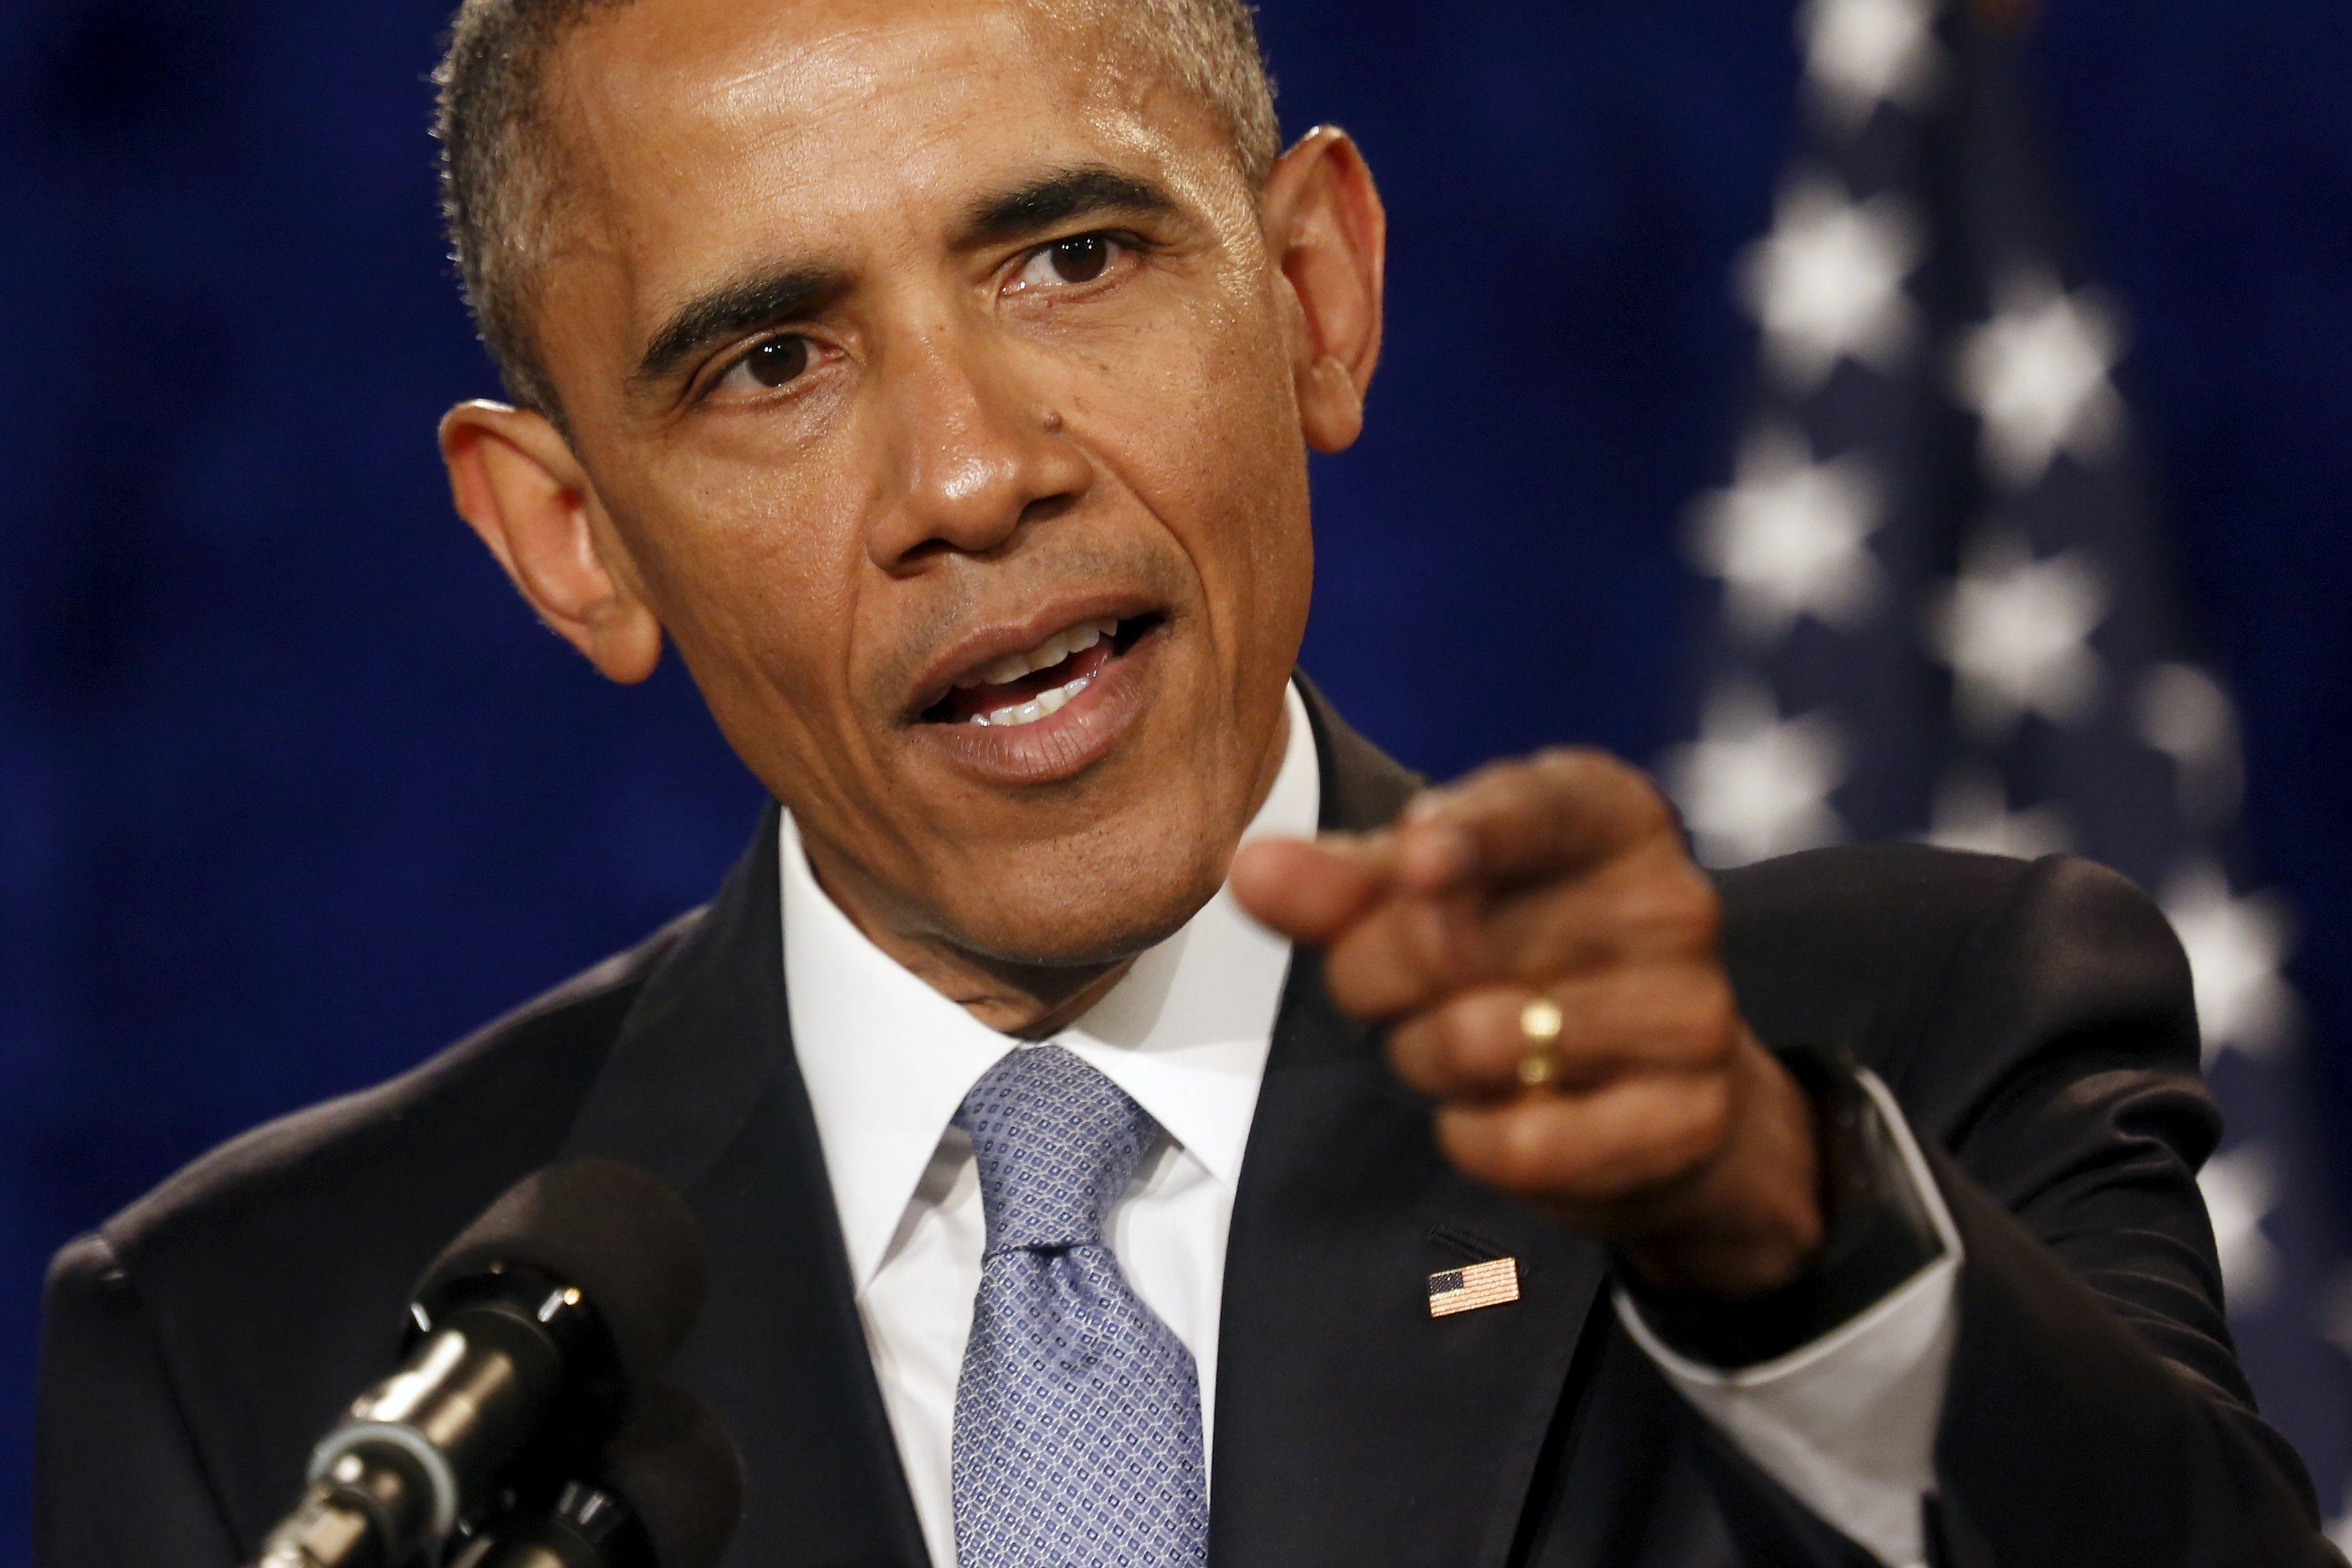 Obama to Democratic trade critics: 'I take that personally'